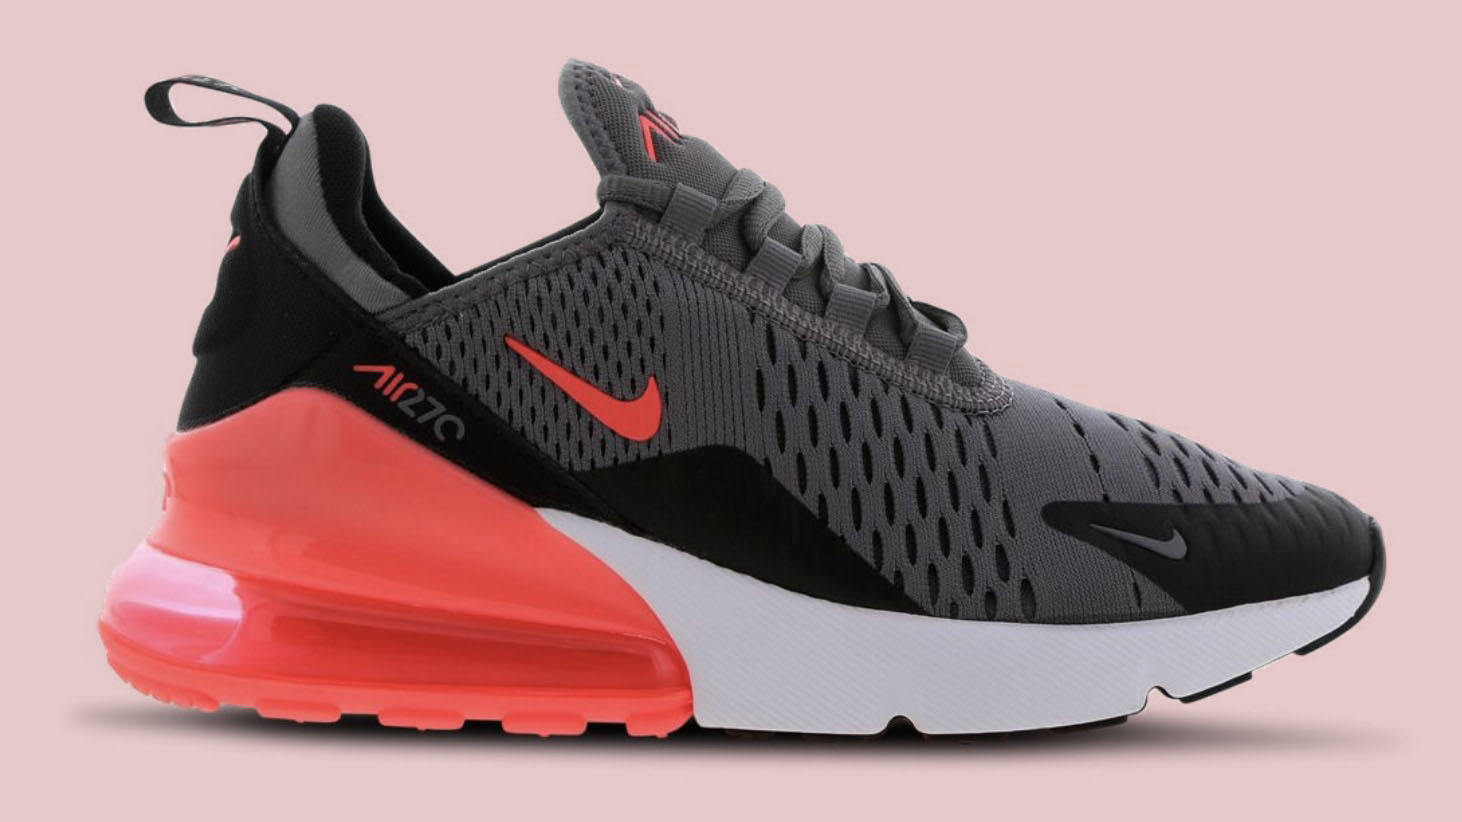 This Nike Air Max 270 Looks Punchy In Pink Style Guides The